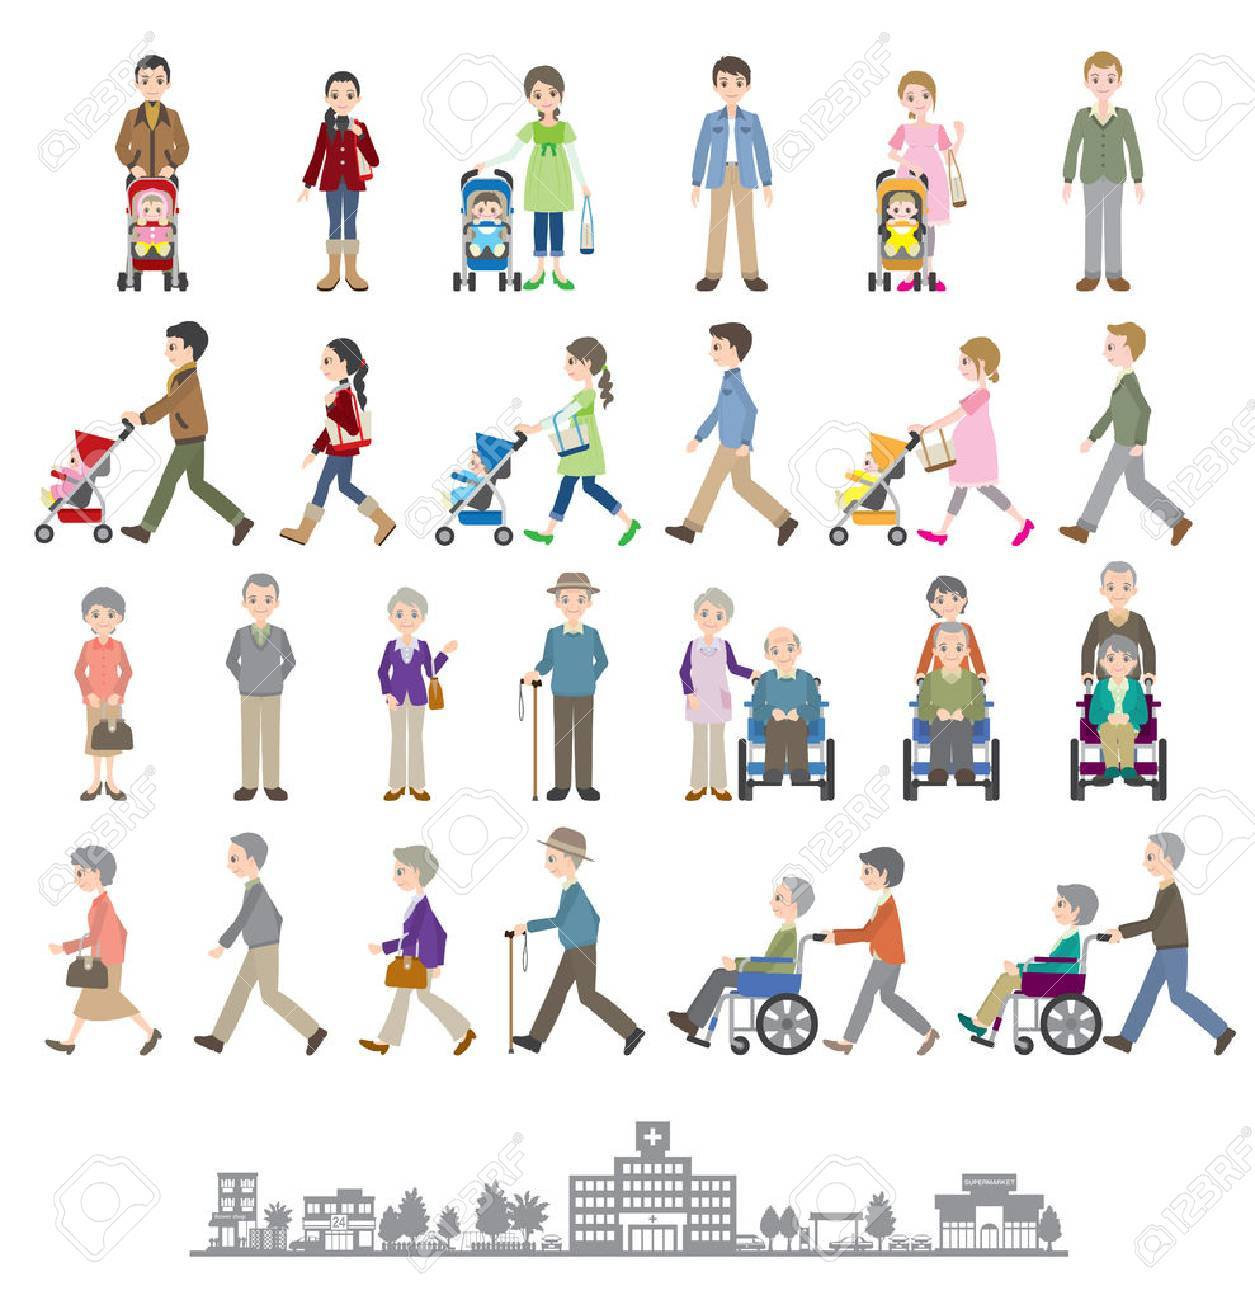 Illustrations of various people / Family - 35834531